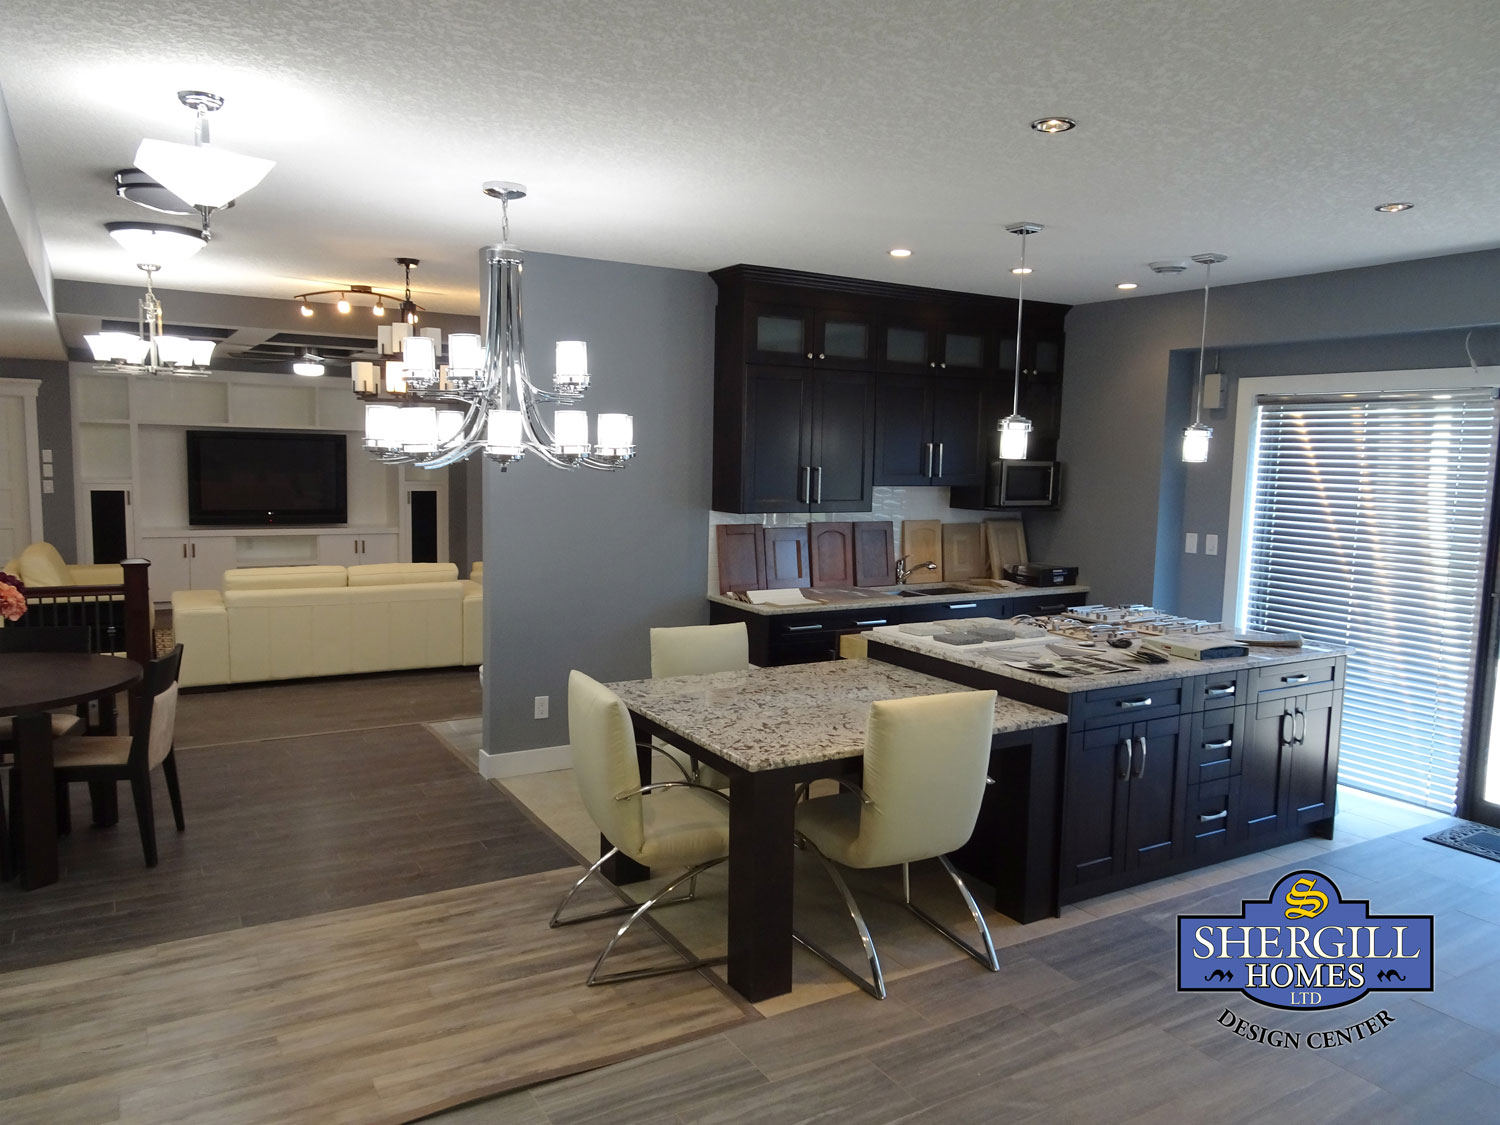 Shergill Homes Design Center (Fort McMurray Home Builders)